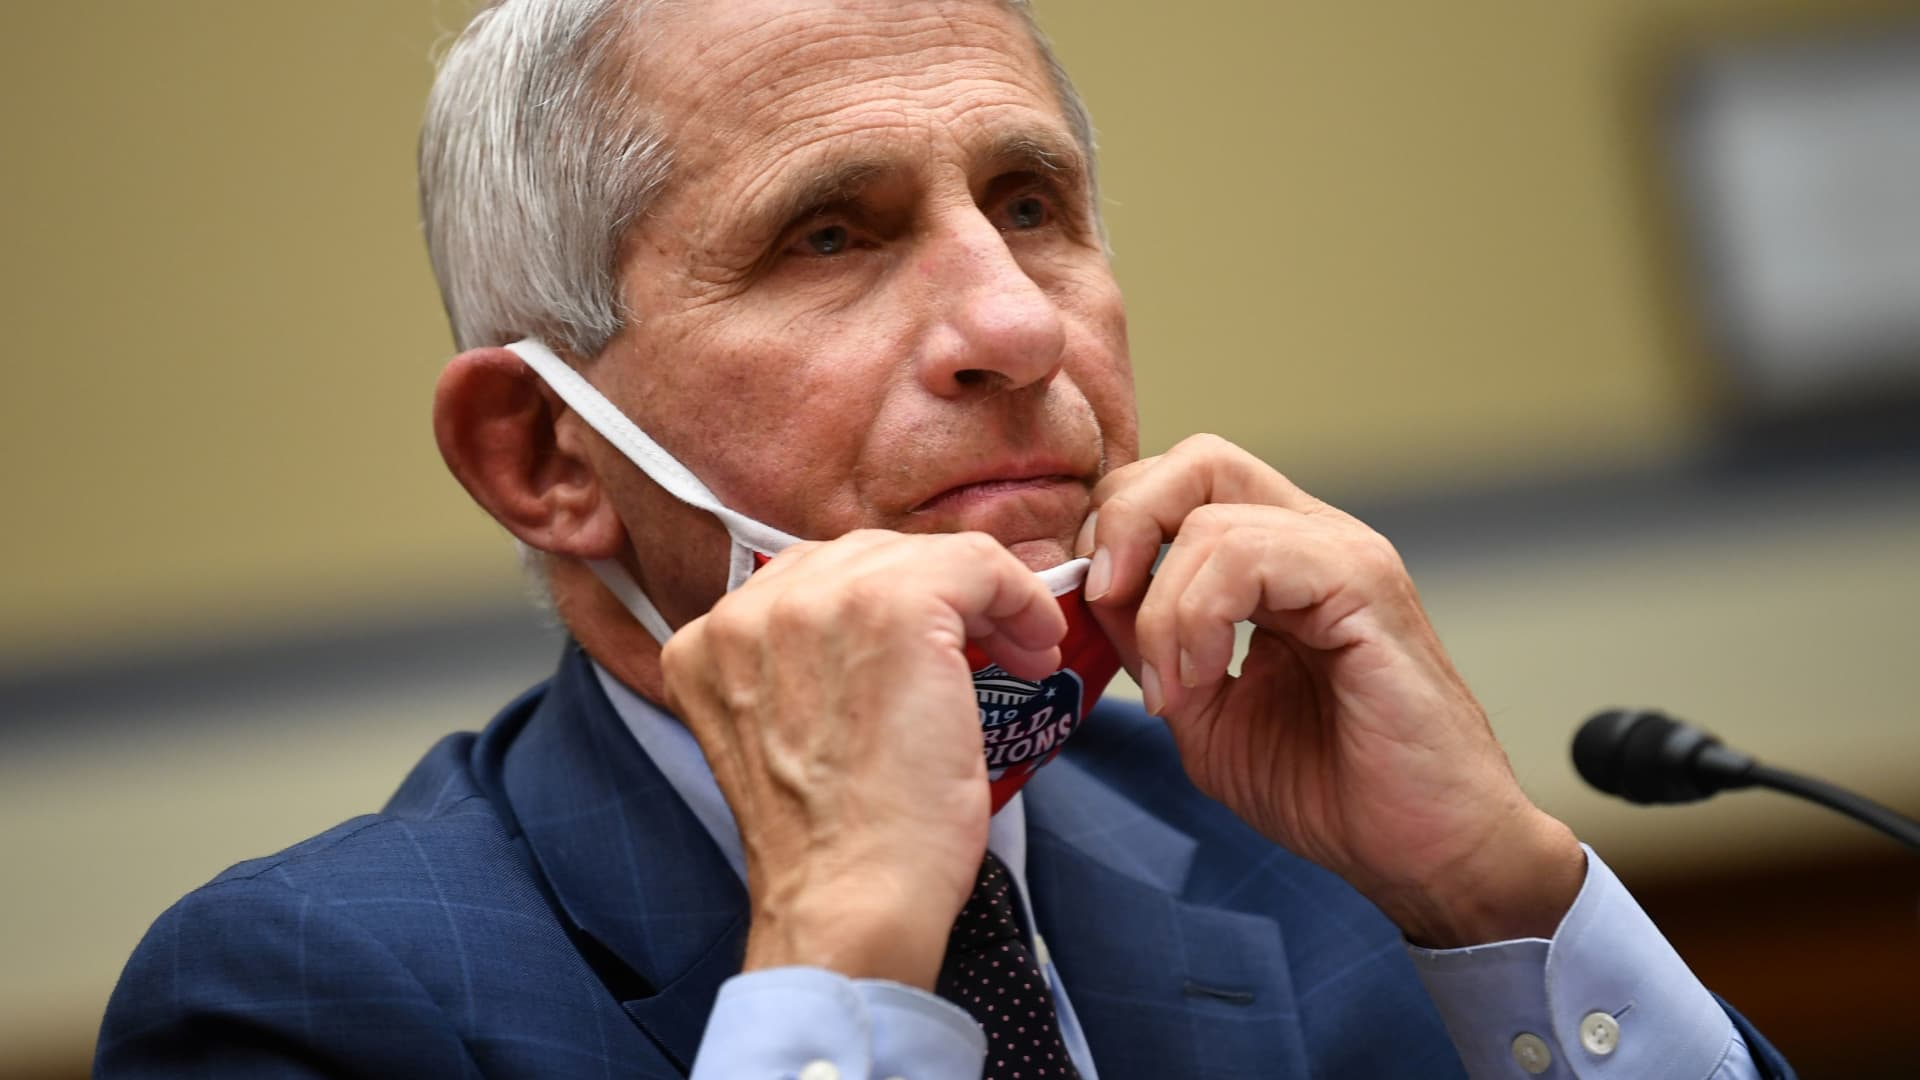 Anthony Fauci, director of the National Institute of Allergy and Infectious Diseases, prepares to testify during a House Select Subcommittee on the Coronavirus Crisis hearing in Washington, D.C., July 31, 2020.